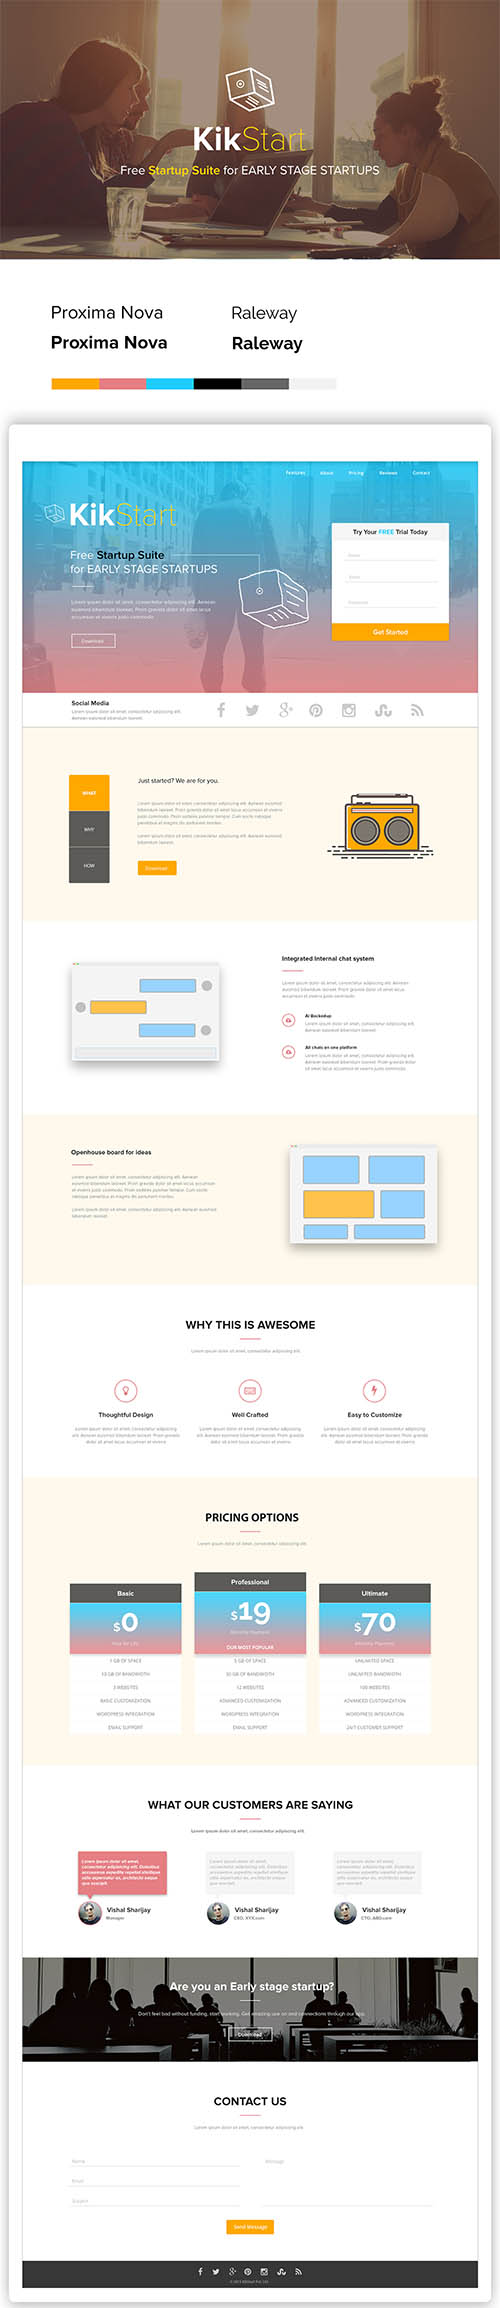 Landing Page website of an Startup suite - KikStart By Vishal Sharijay